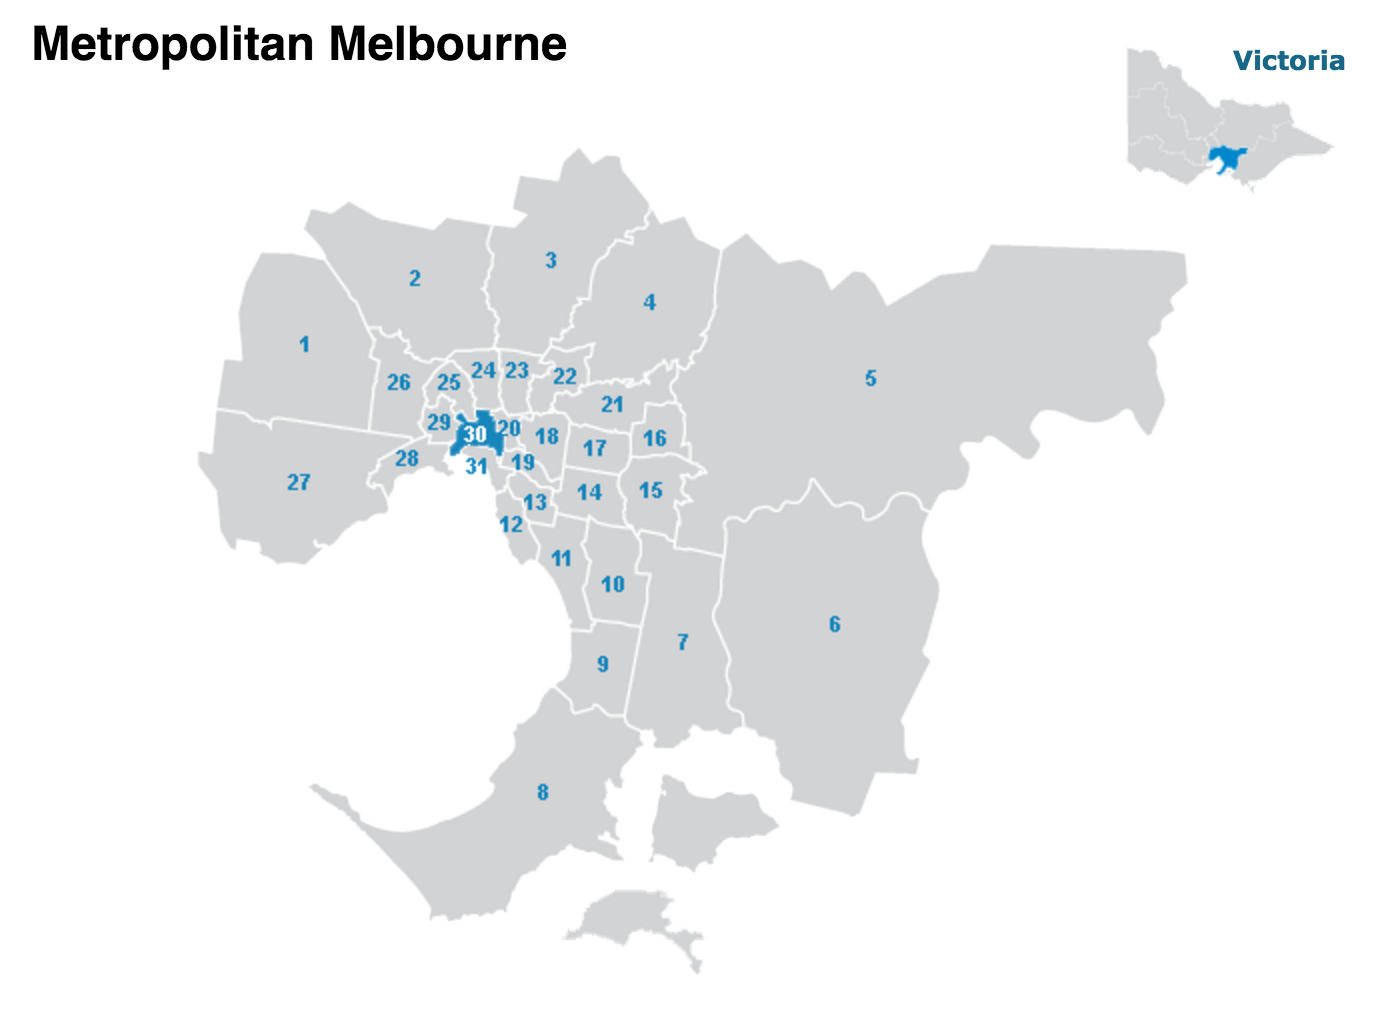 Towards a collaborative city the case for a Melbourne Metropolitan